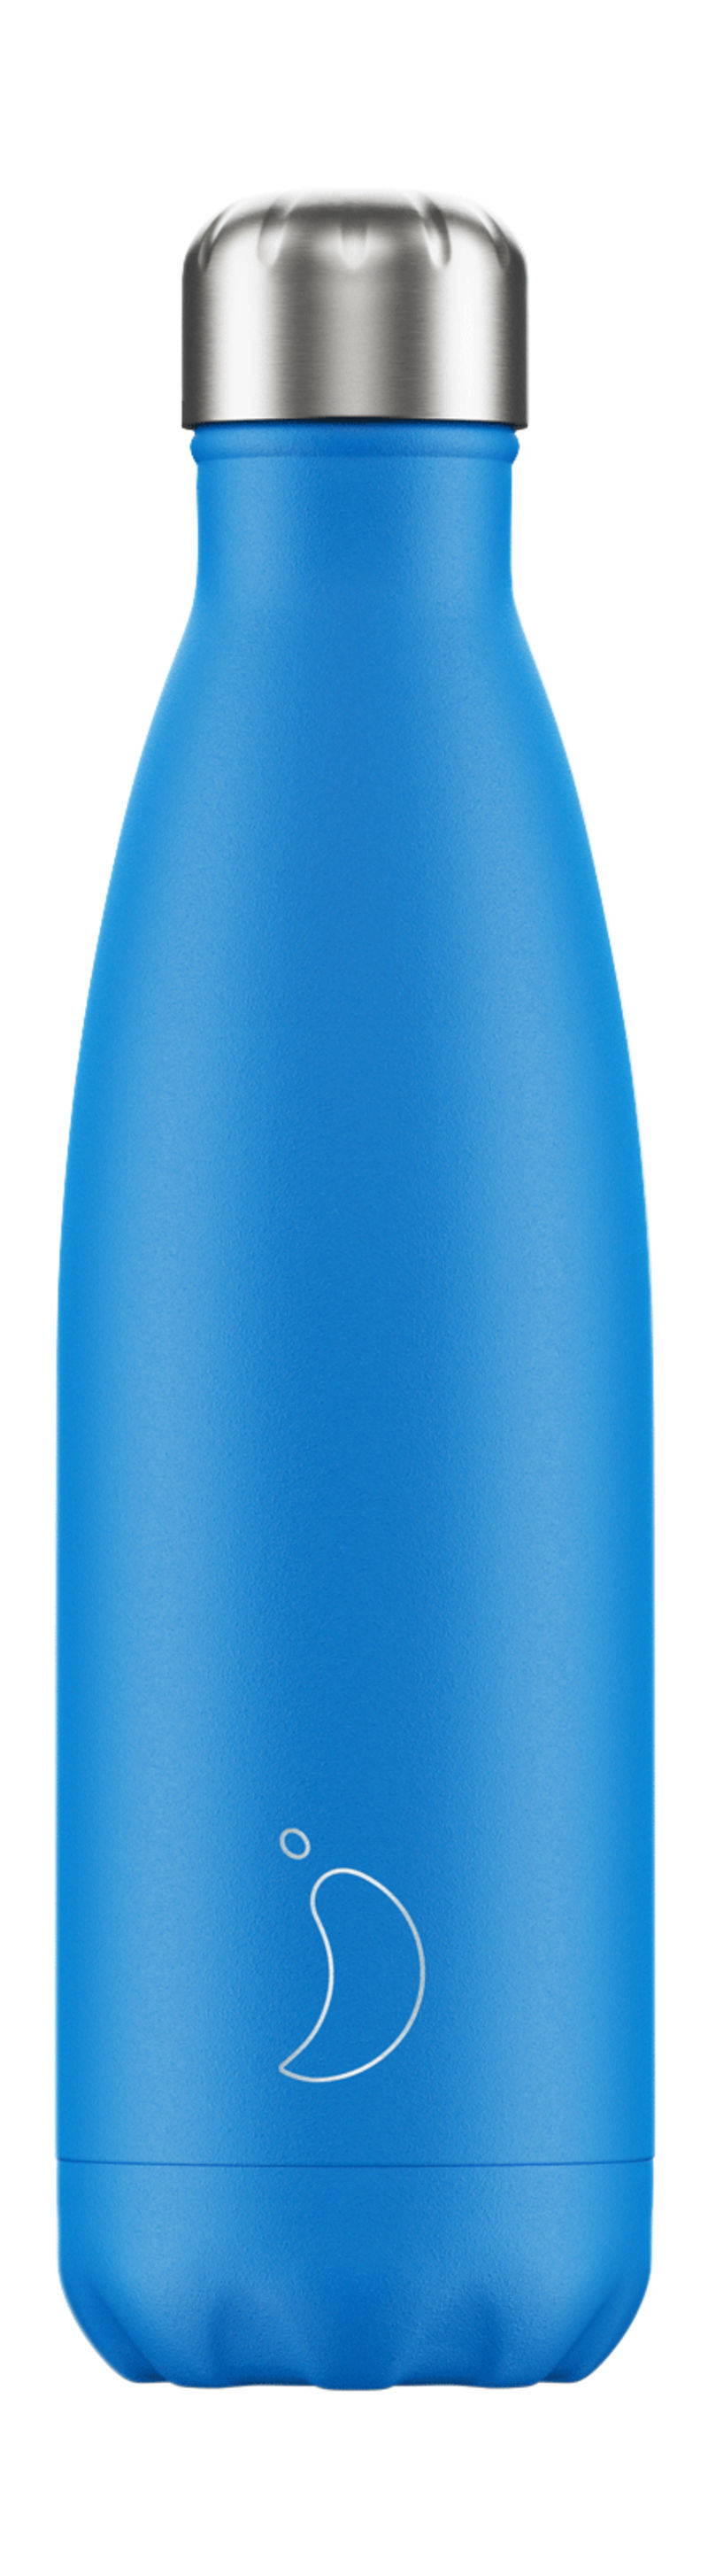 BOTELLA INOX AZUL NEON 500ML